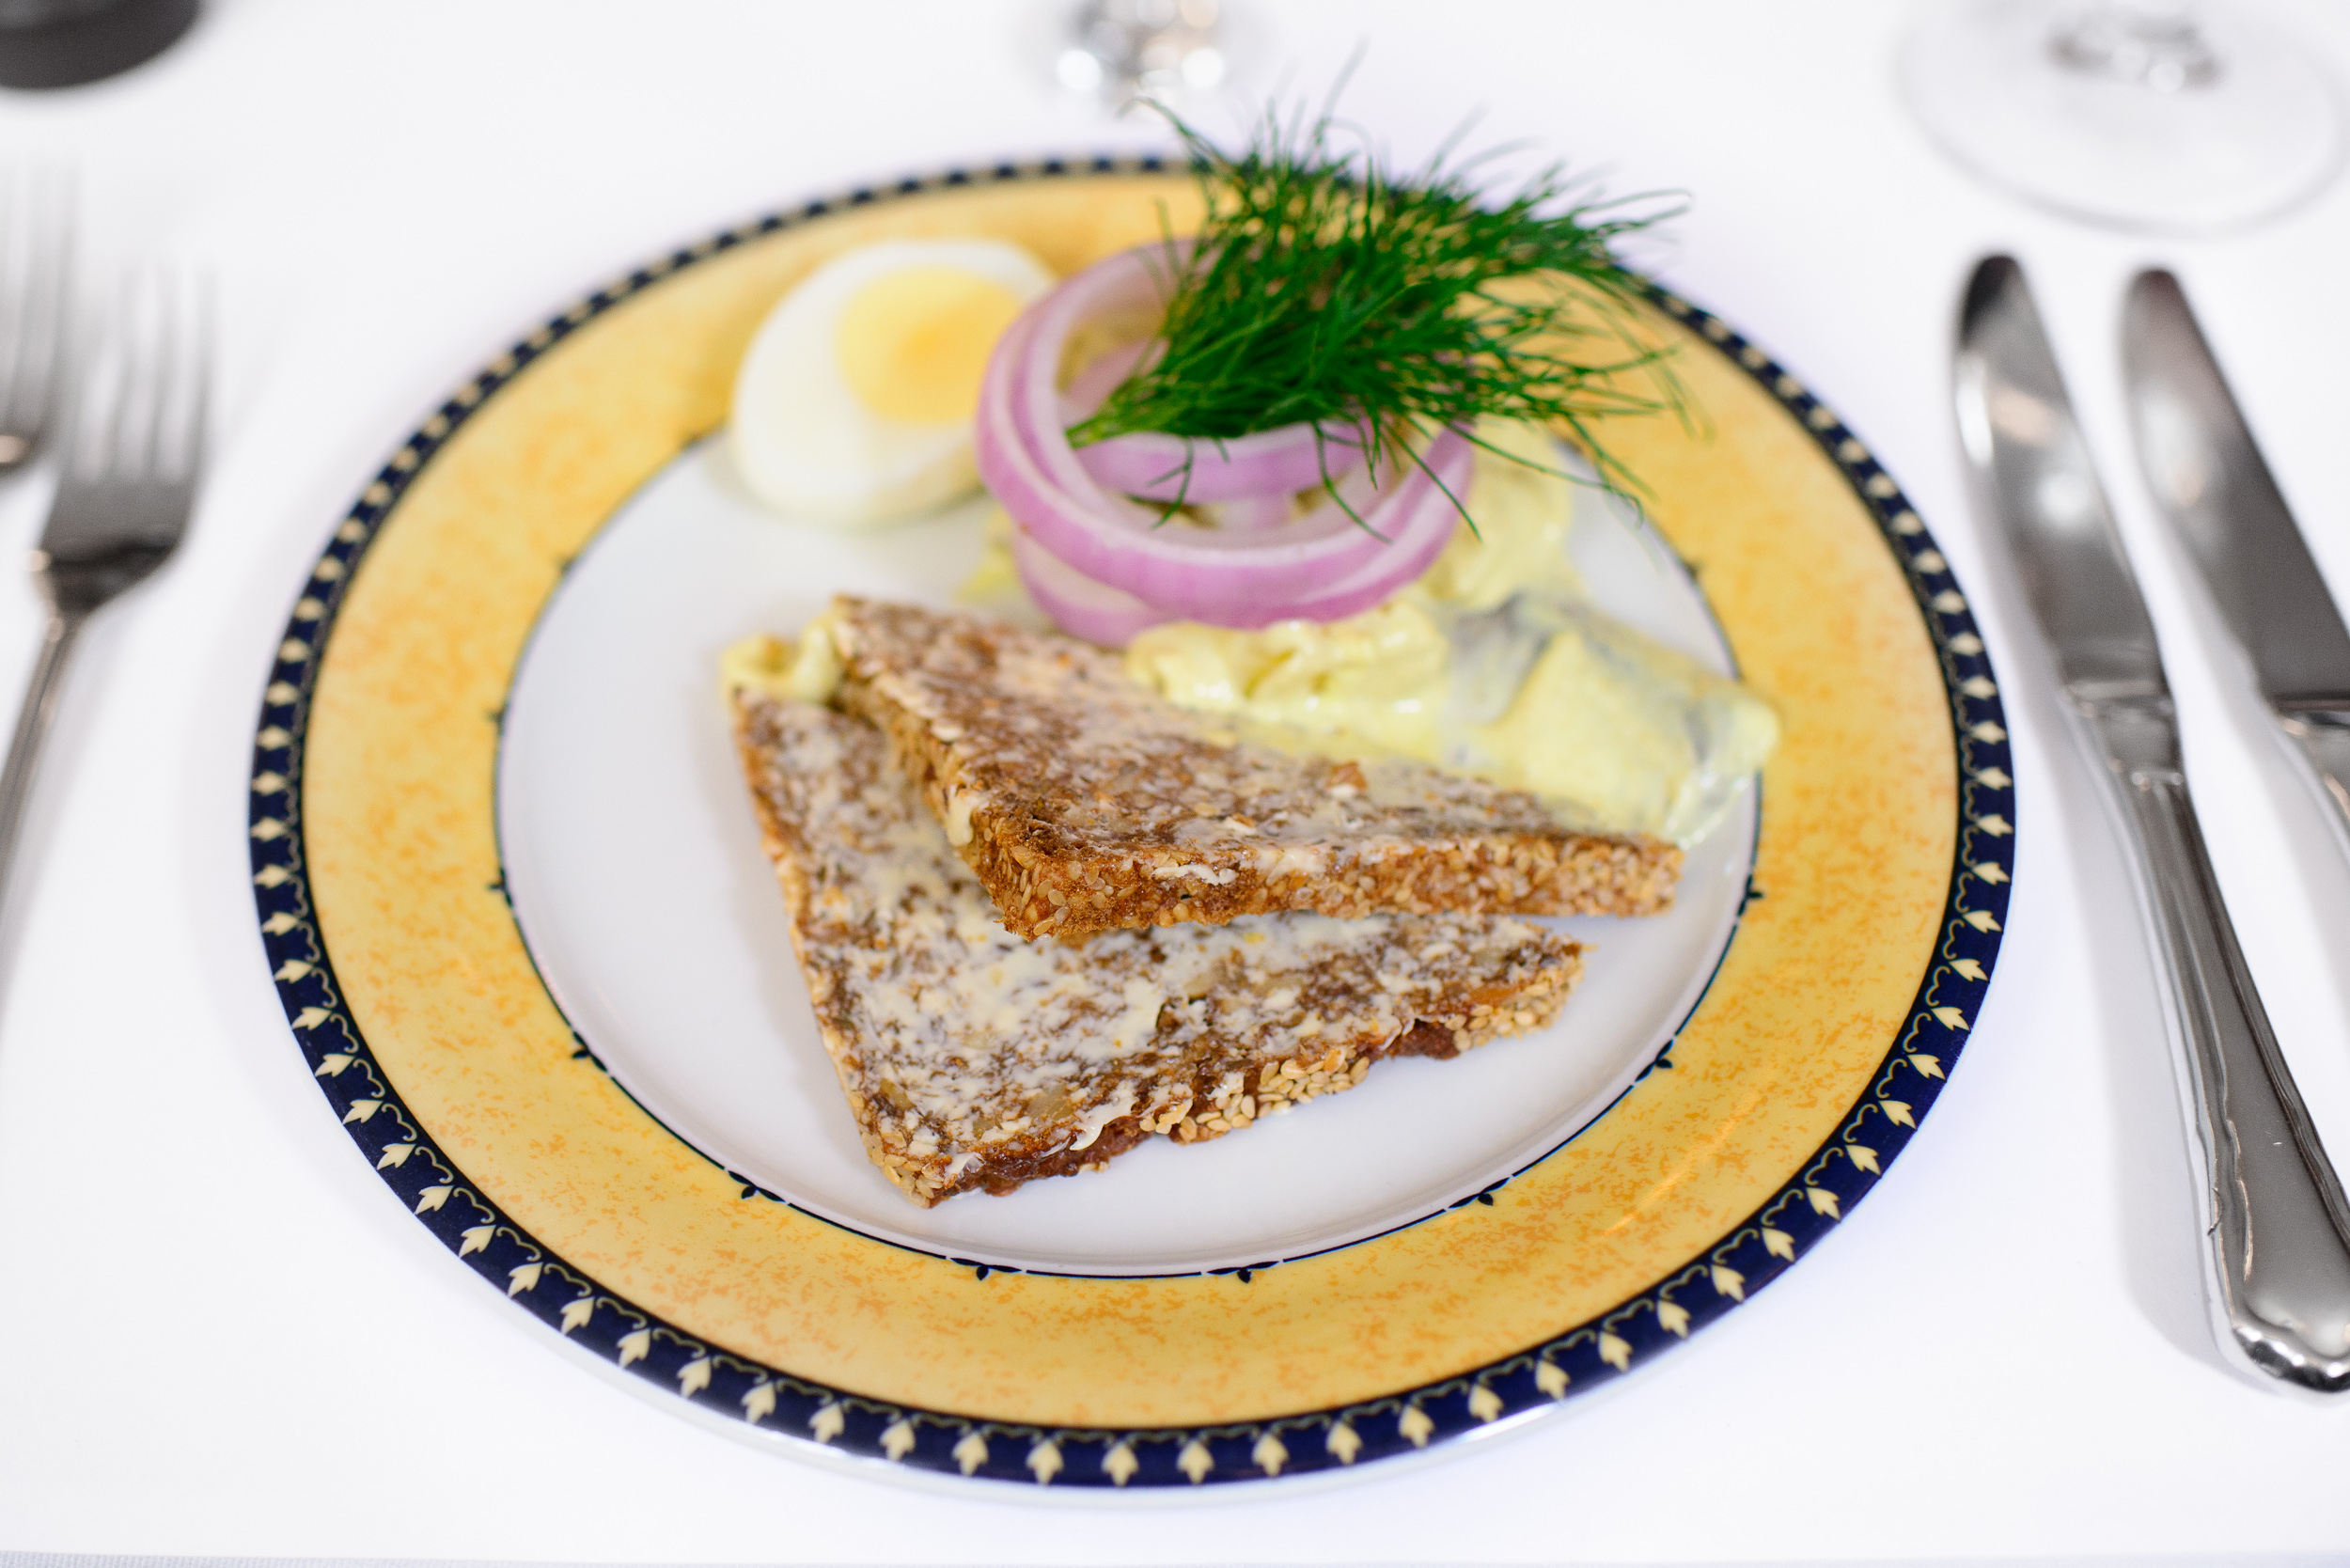 Curry-spiced herring of the house, served with egg